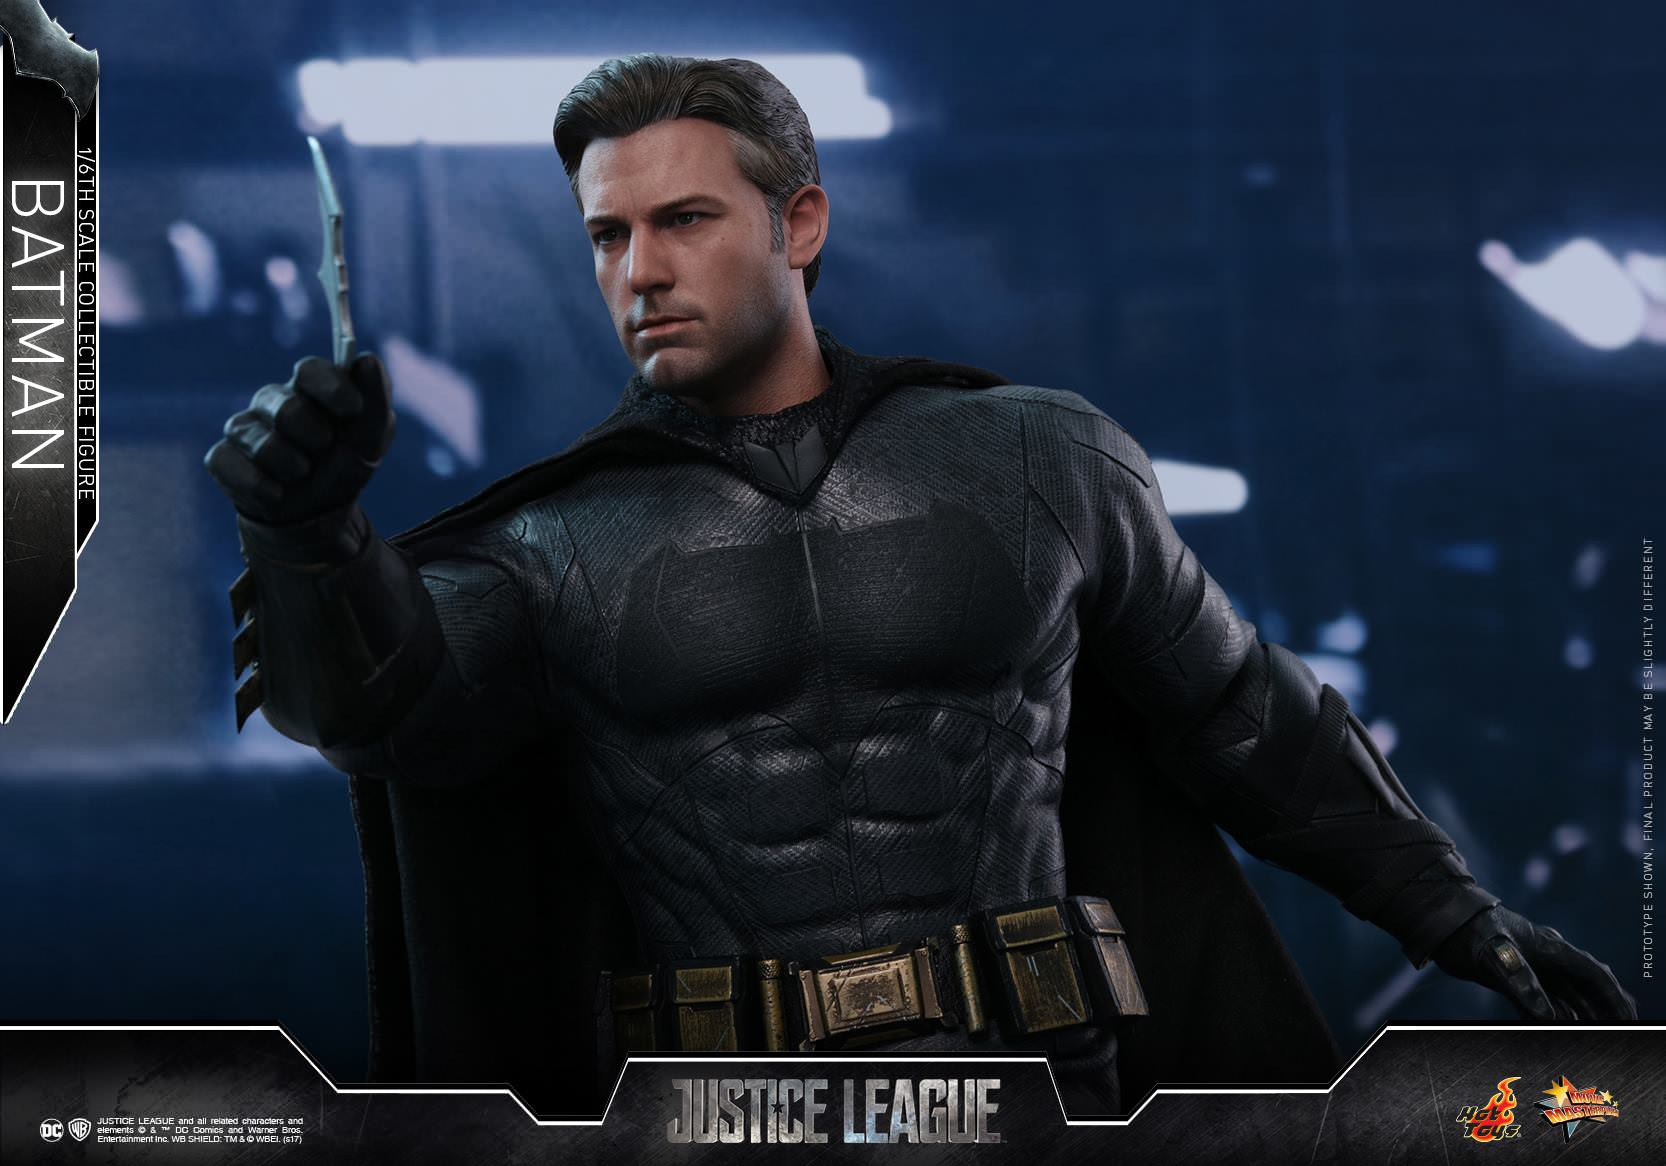 hot toys mms 455  u0026 456 justice league  u2013 batman  u2013 hot toys complete checklist